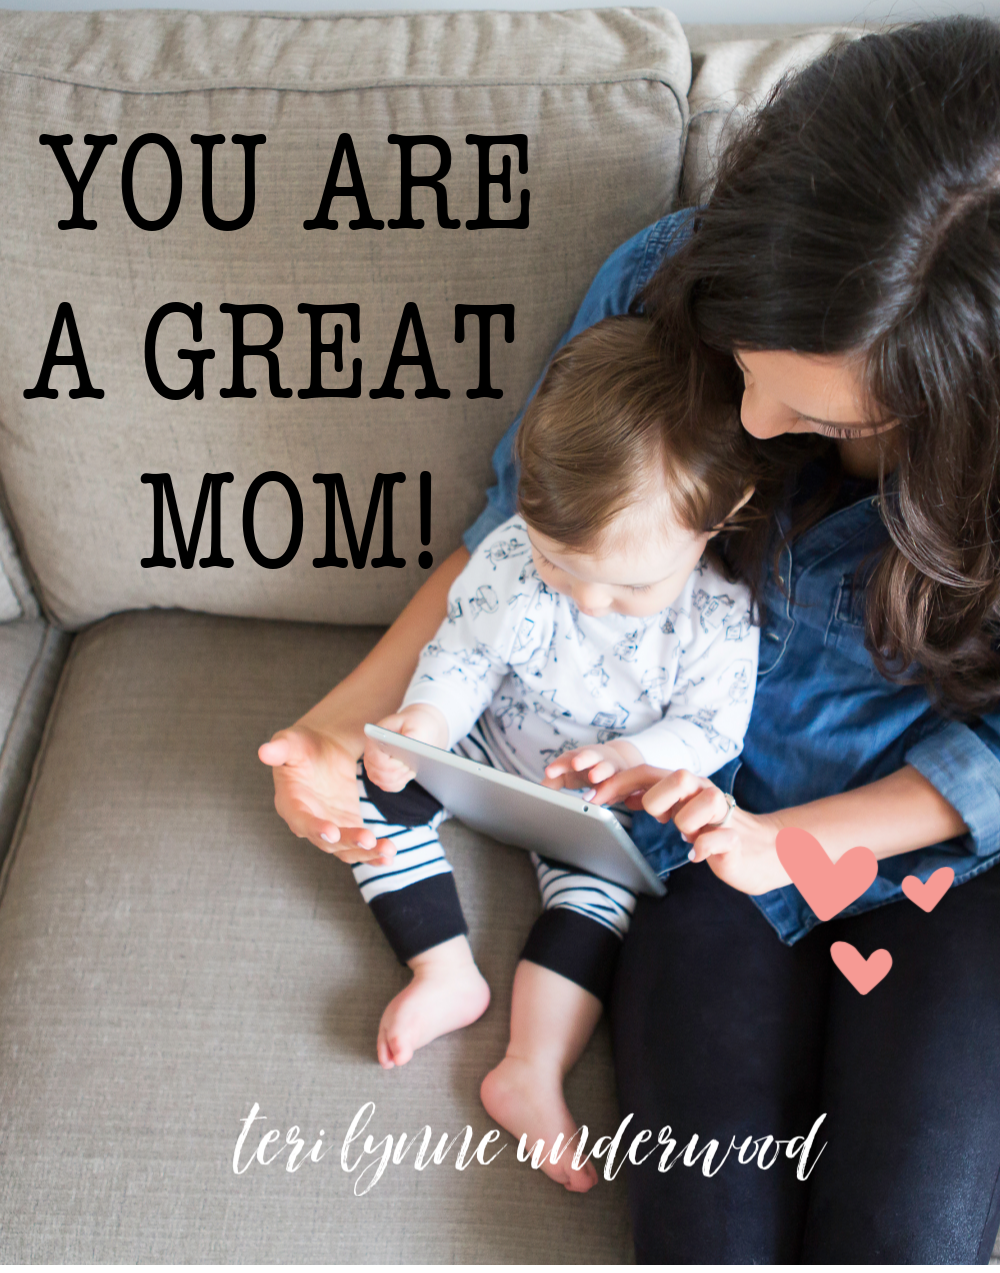 Some days we just need someone to come alongside us and tell us we're doing a good job. So, in case no one has told you today — You are a GREAT mom!!